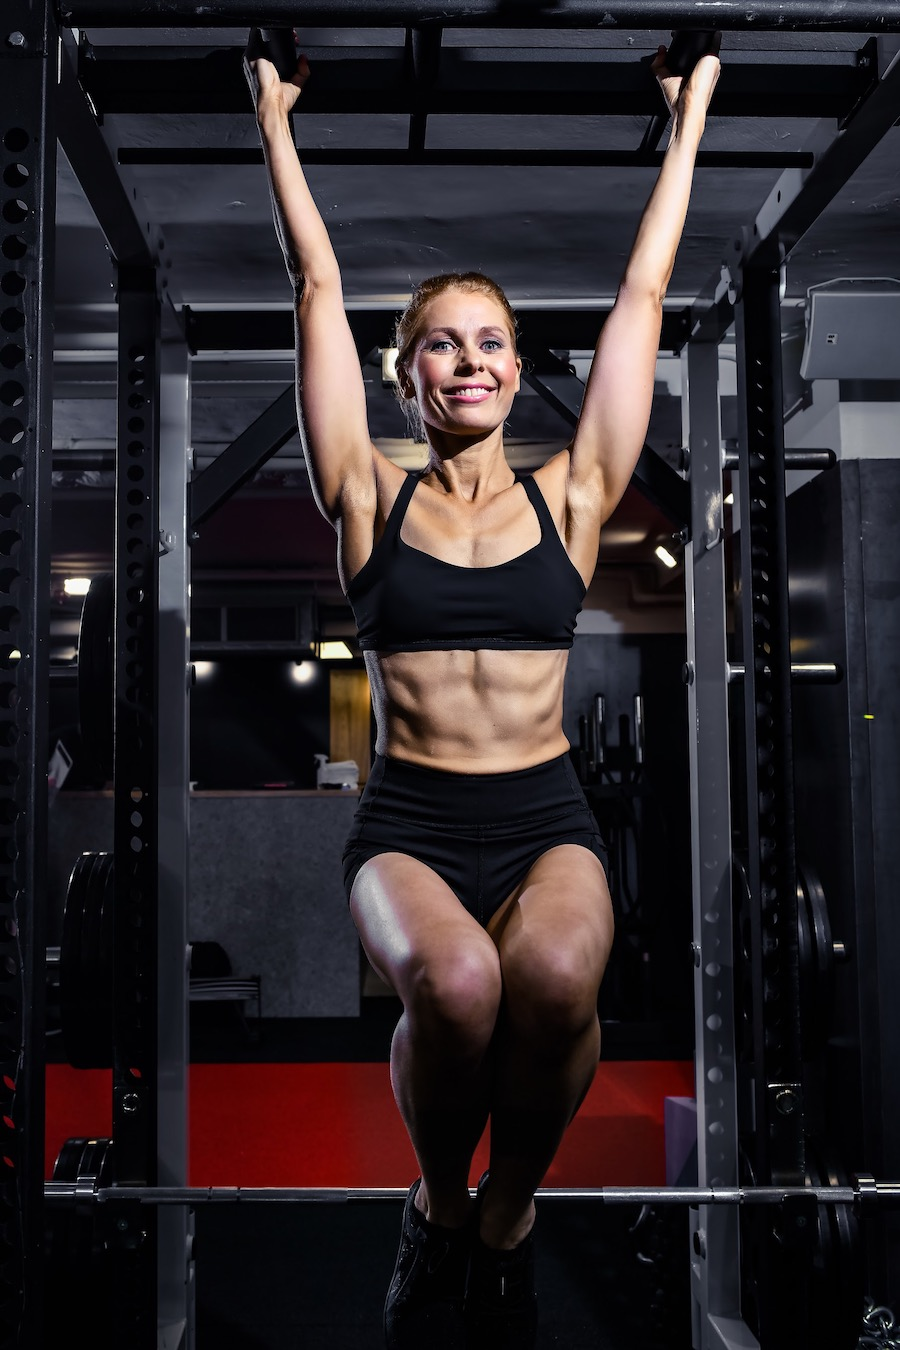 Catherine   Body Transformation   In the gym